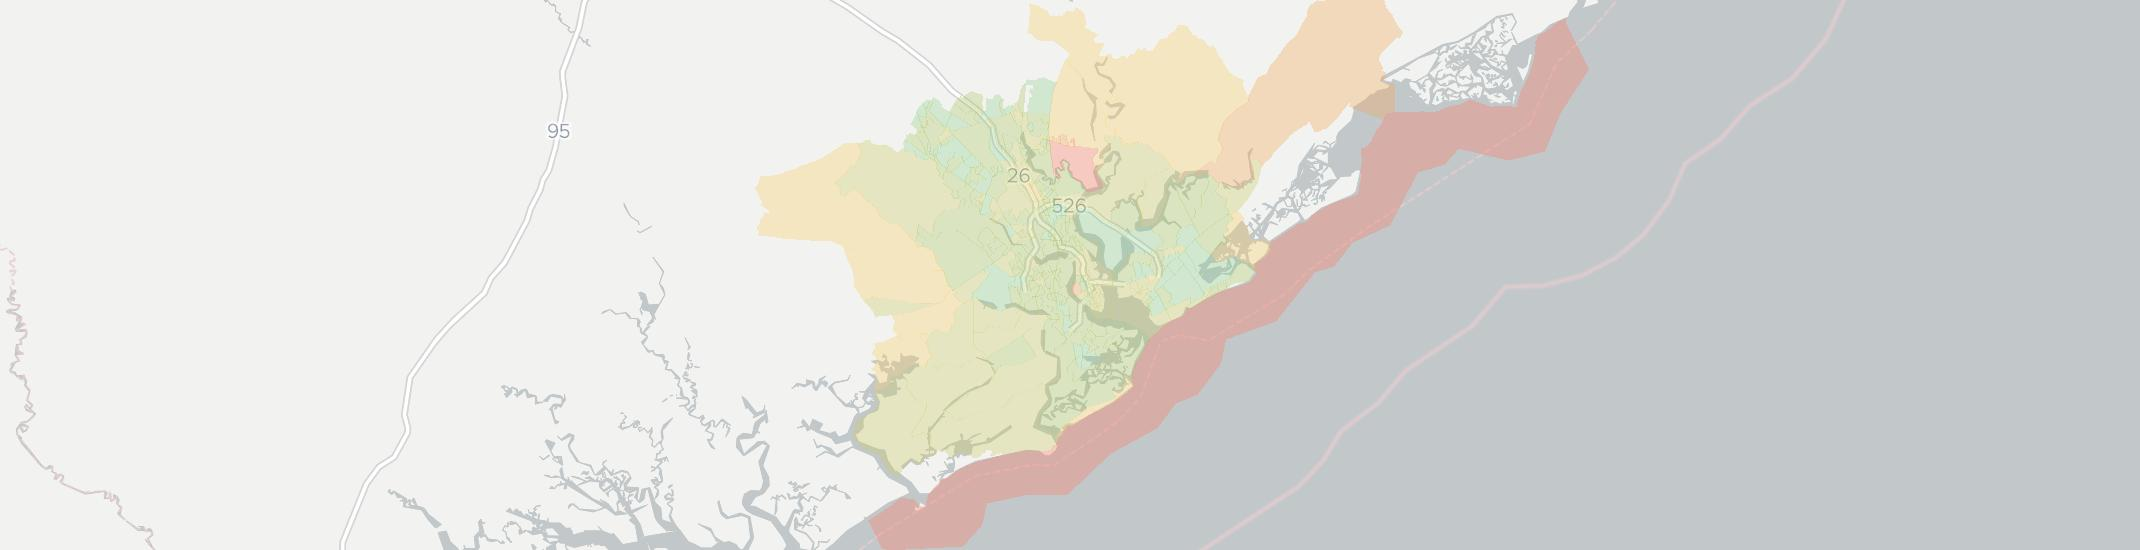 Charleston Internet Competition Map. Click for interactive map.